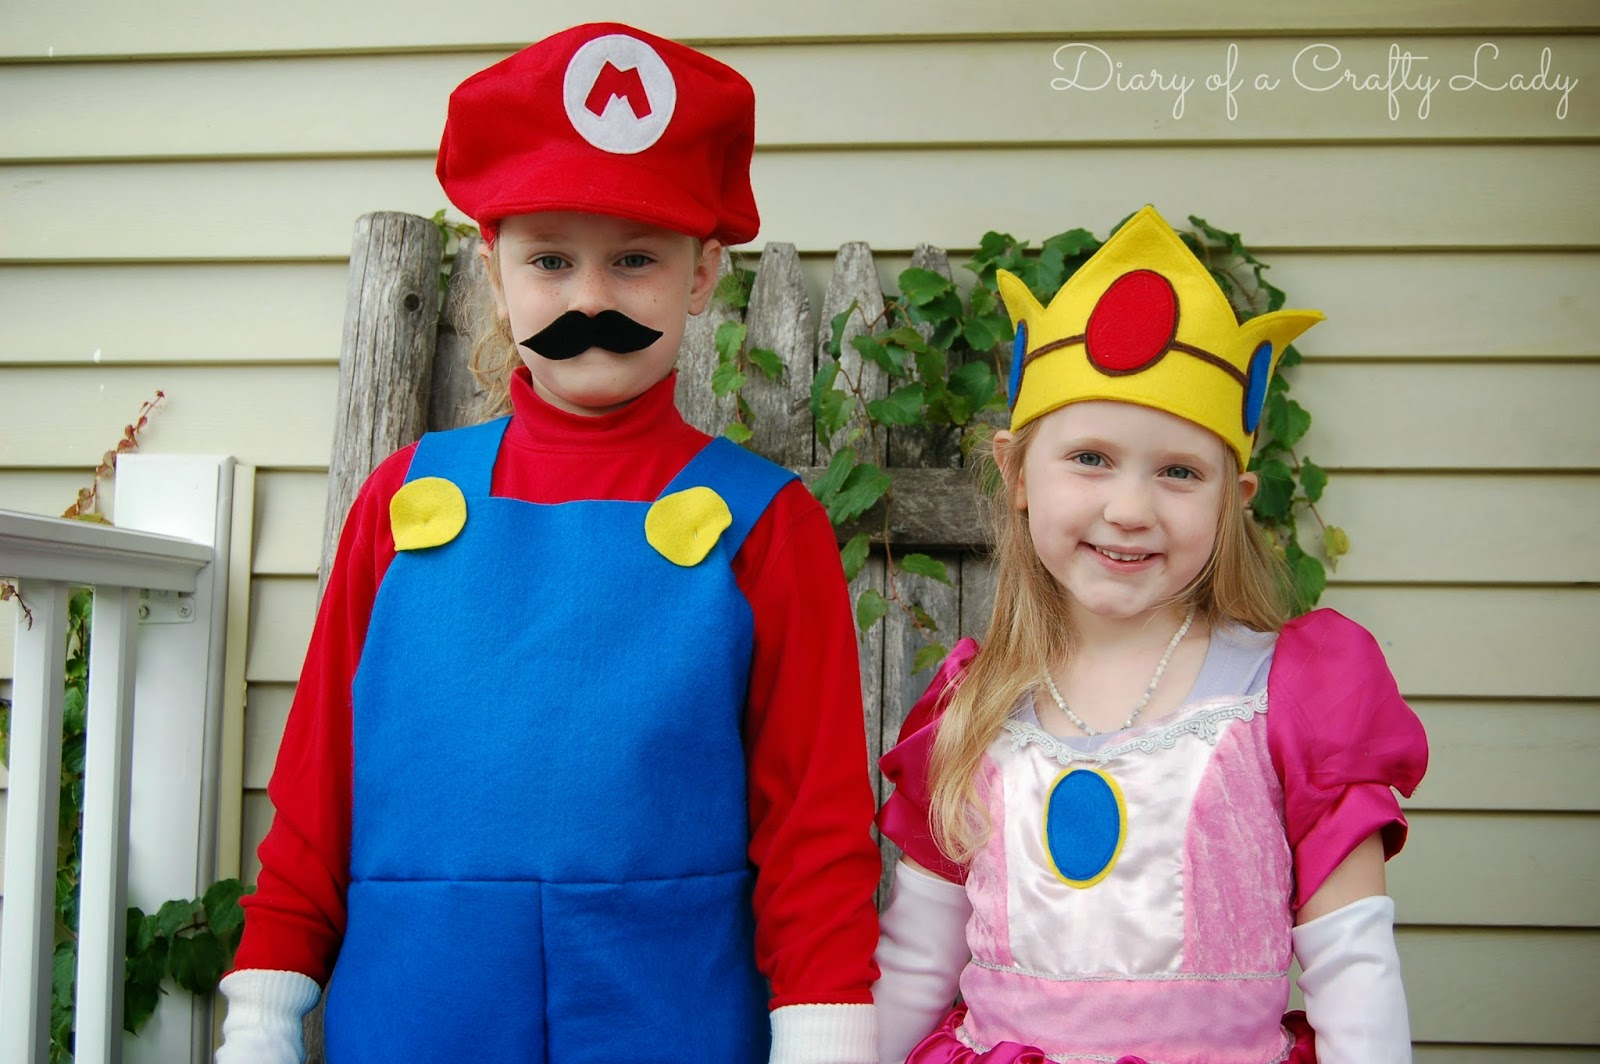 Meet Mario and Princess Peach! 2013 Halloween Costumes  sc 1 st  Diary of a Crafty Lady & Diary of a Crafty Lady: Meet Mario and Princess Peach! 2013 ...